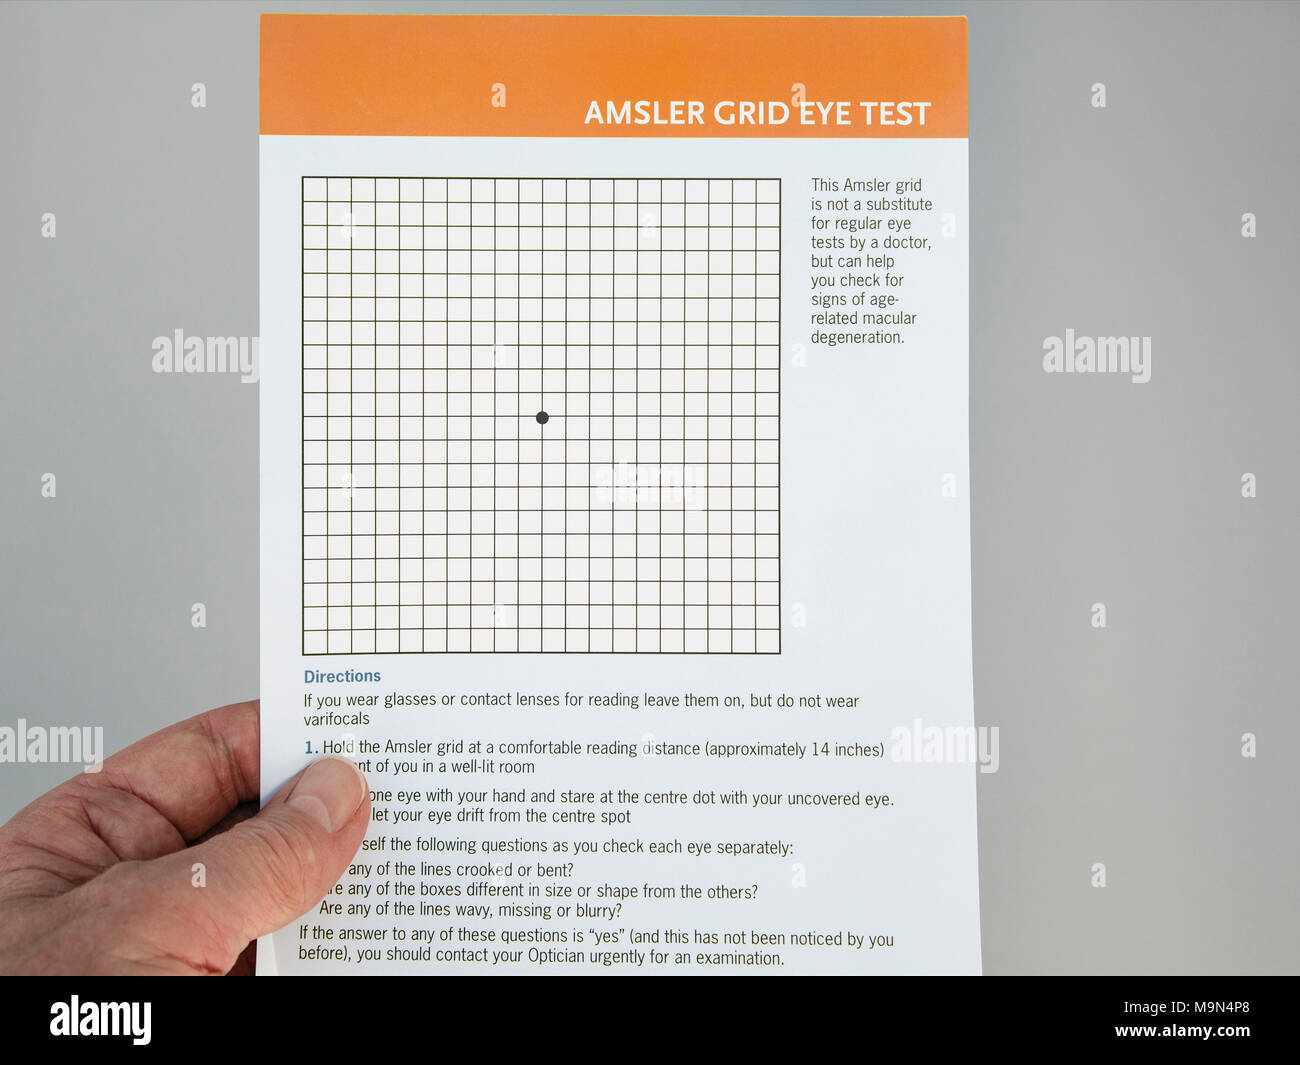 Senior elderly person hand holding and looking at an Amsler Grid Eye Test card to check eyesight for Age-Related Macular Degeneration in eyes. UK - Stock Image